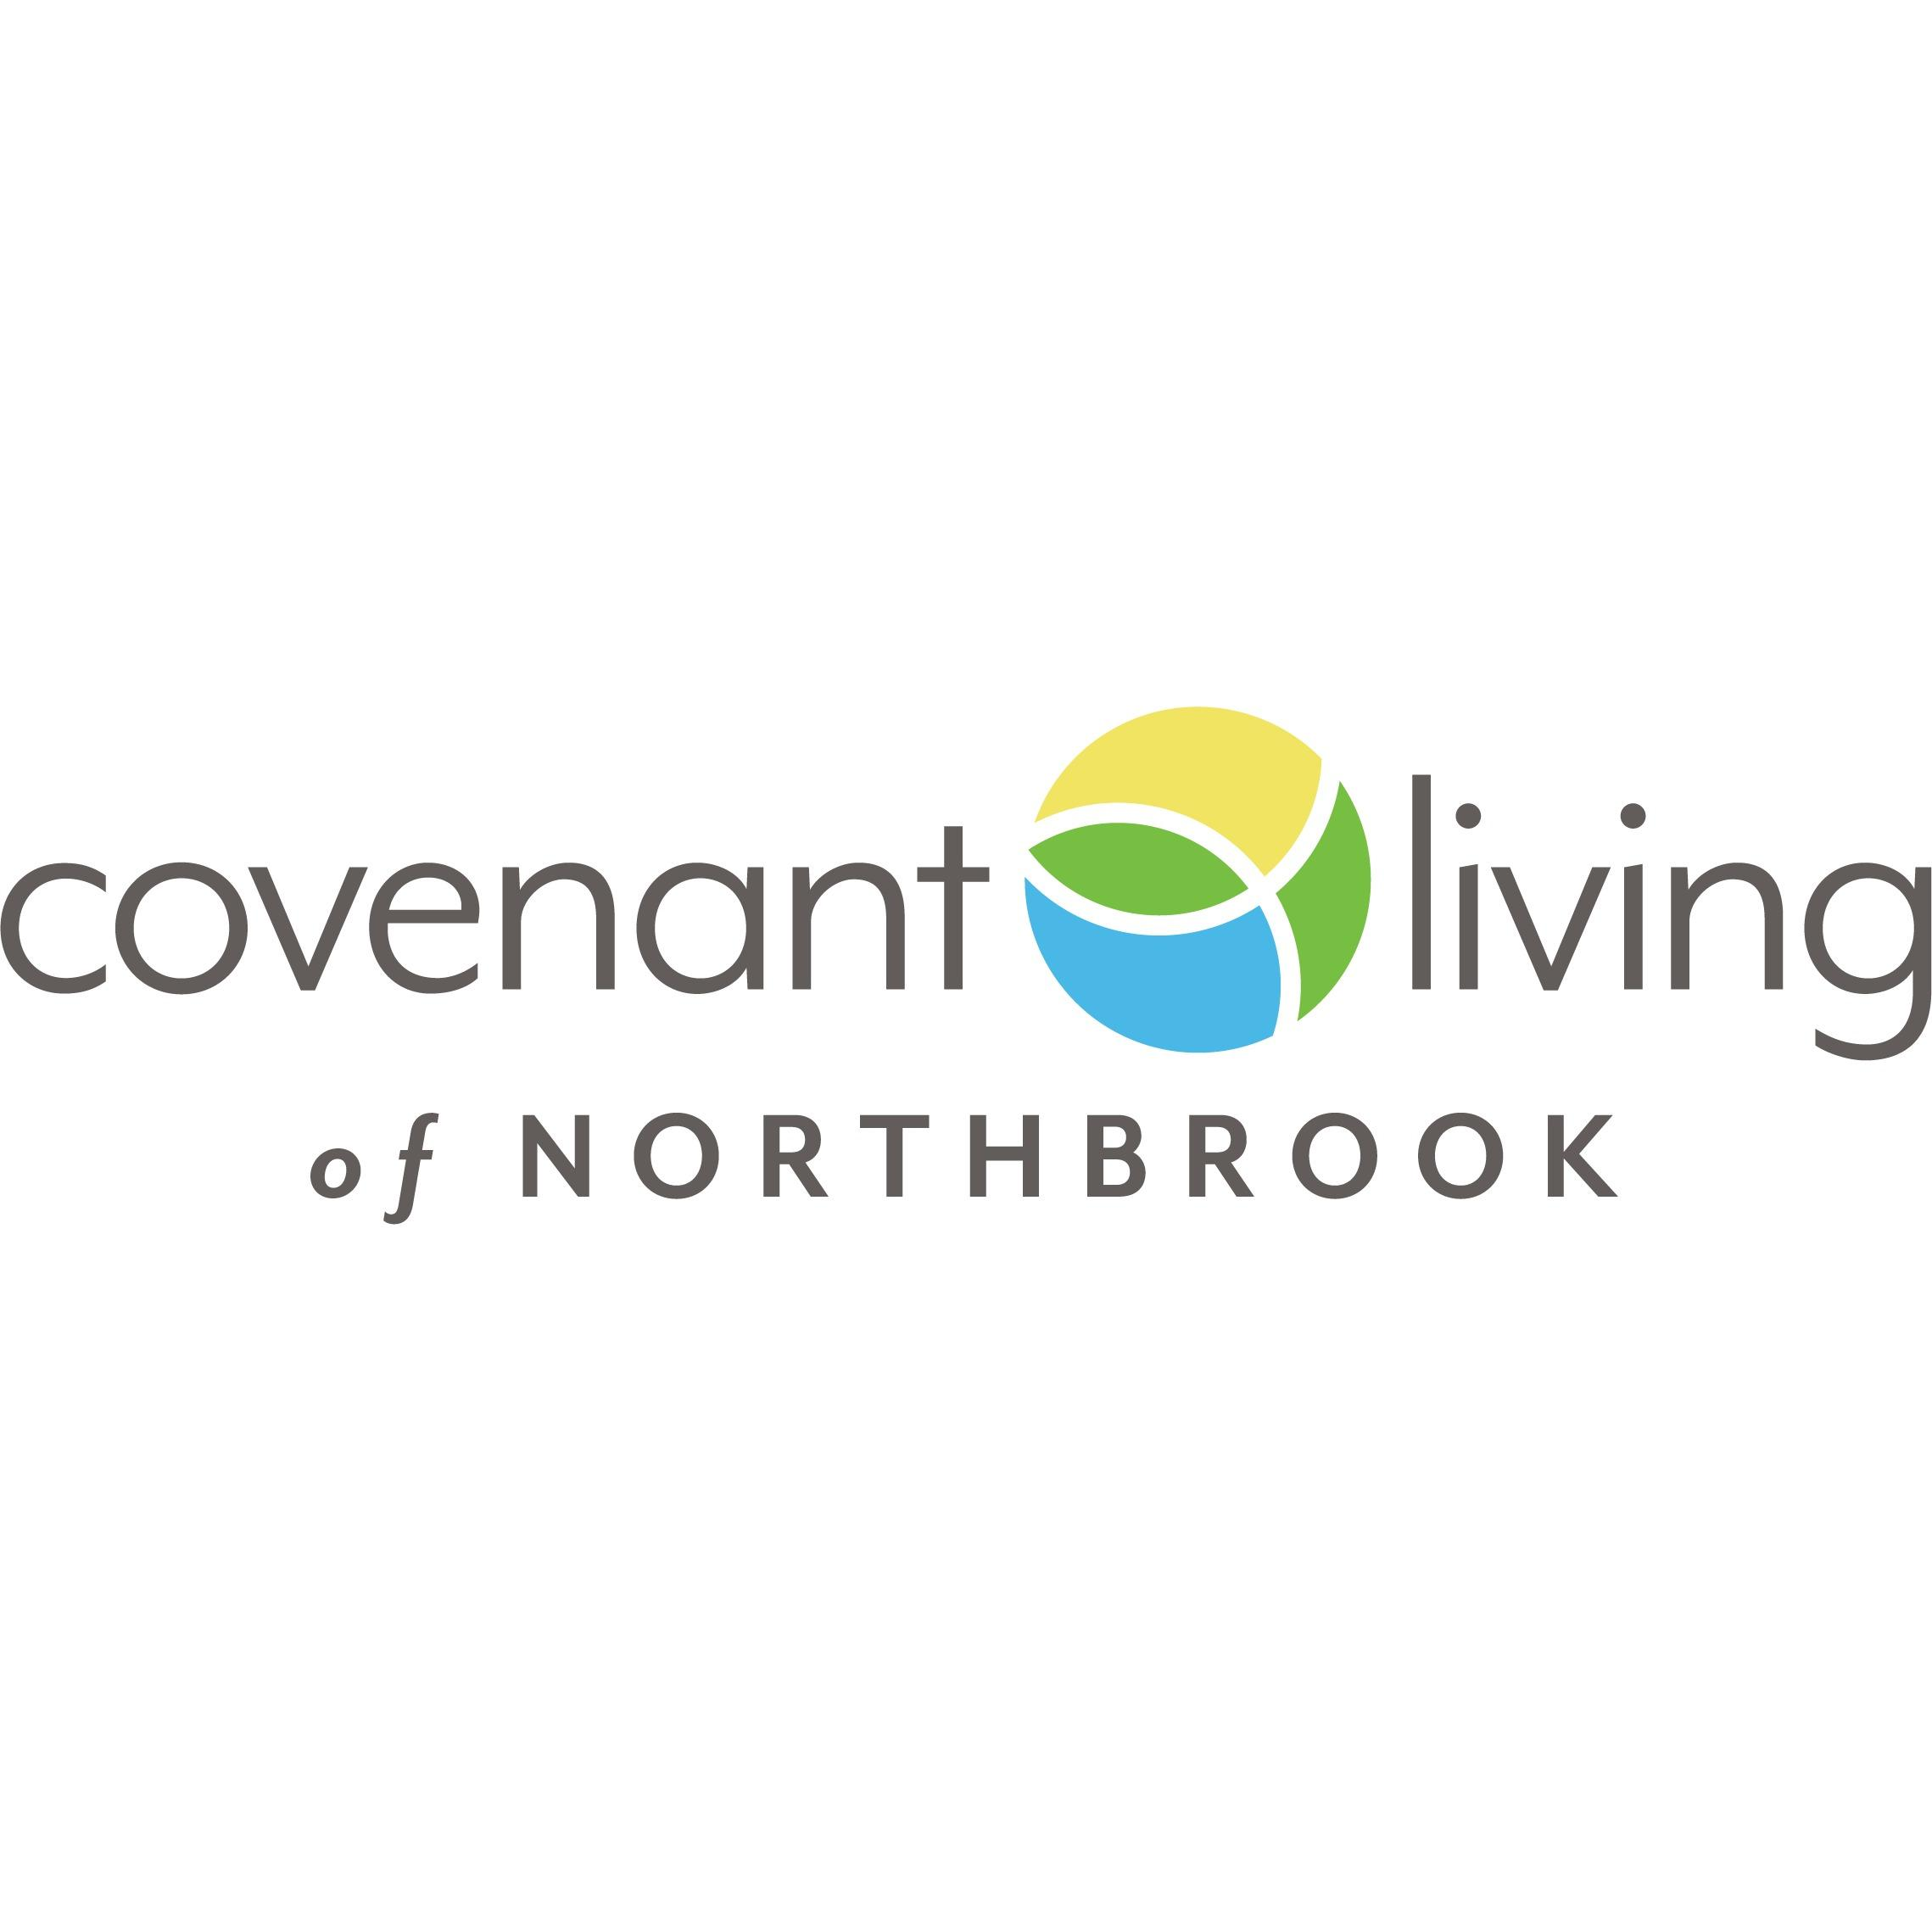 Covenant Living of Northbrook